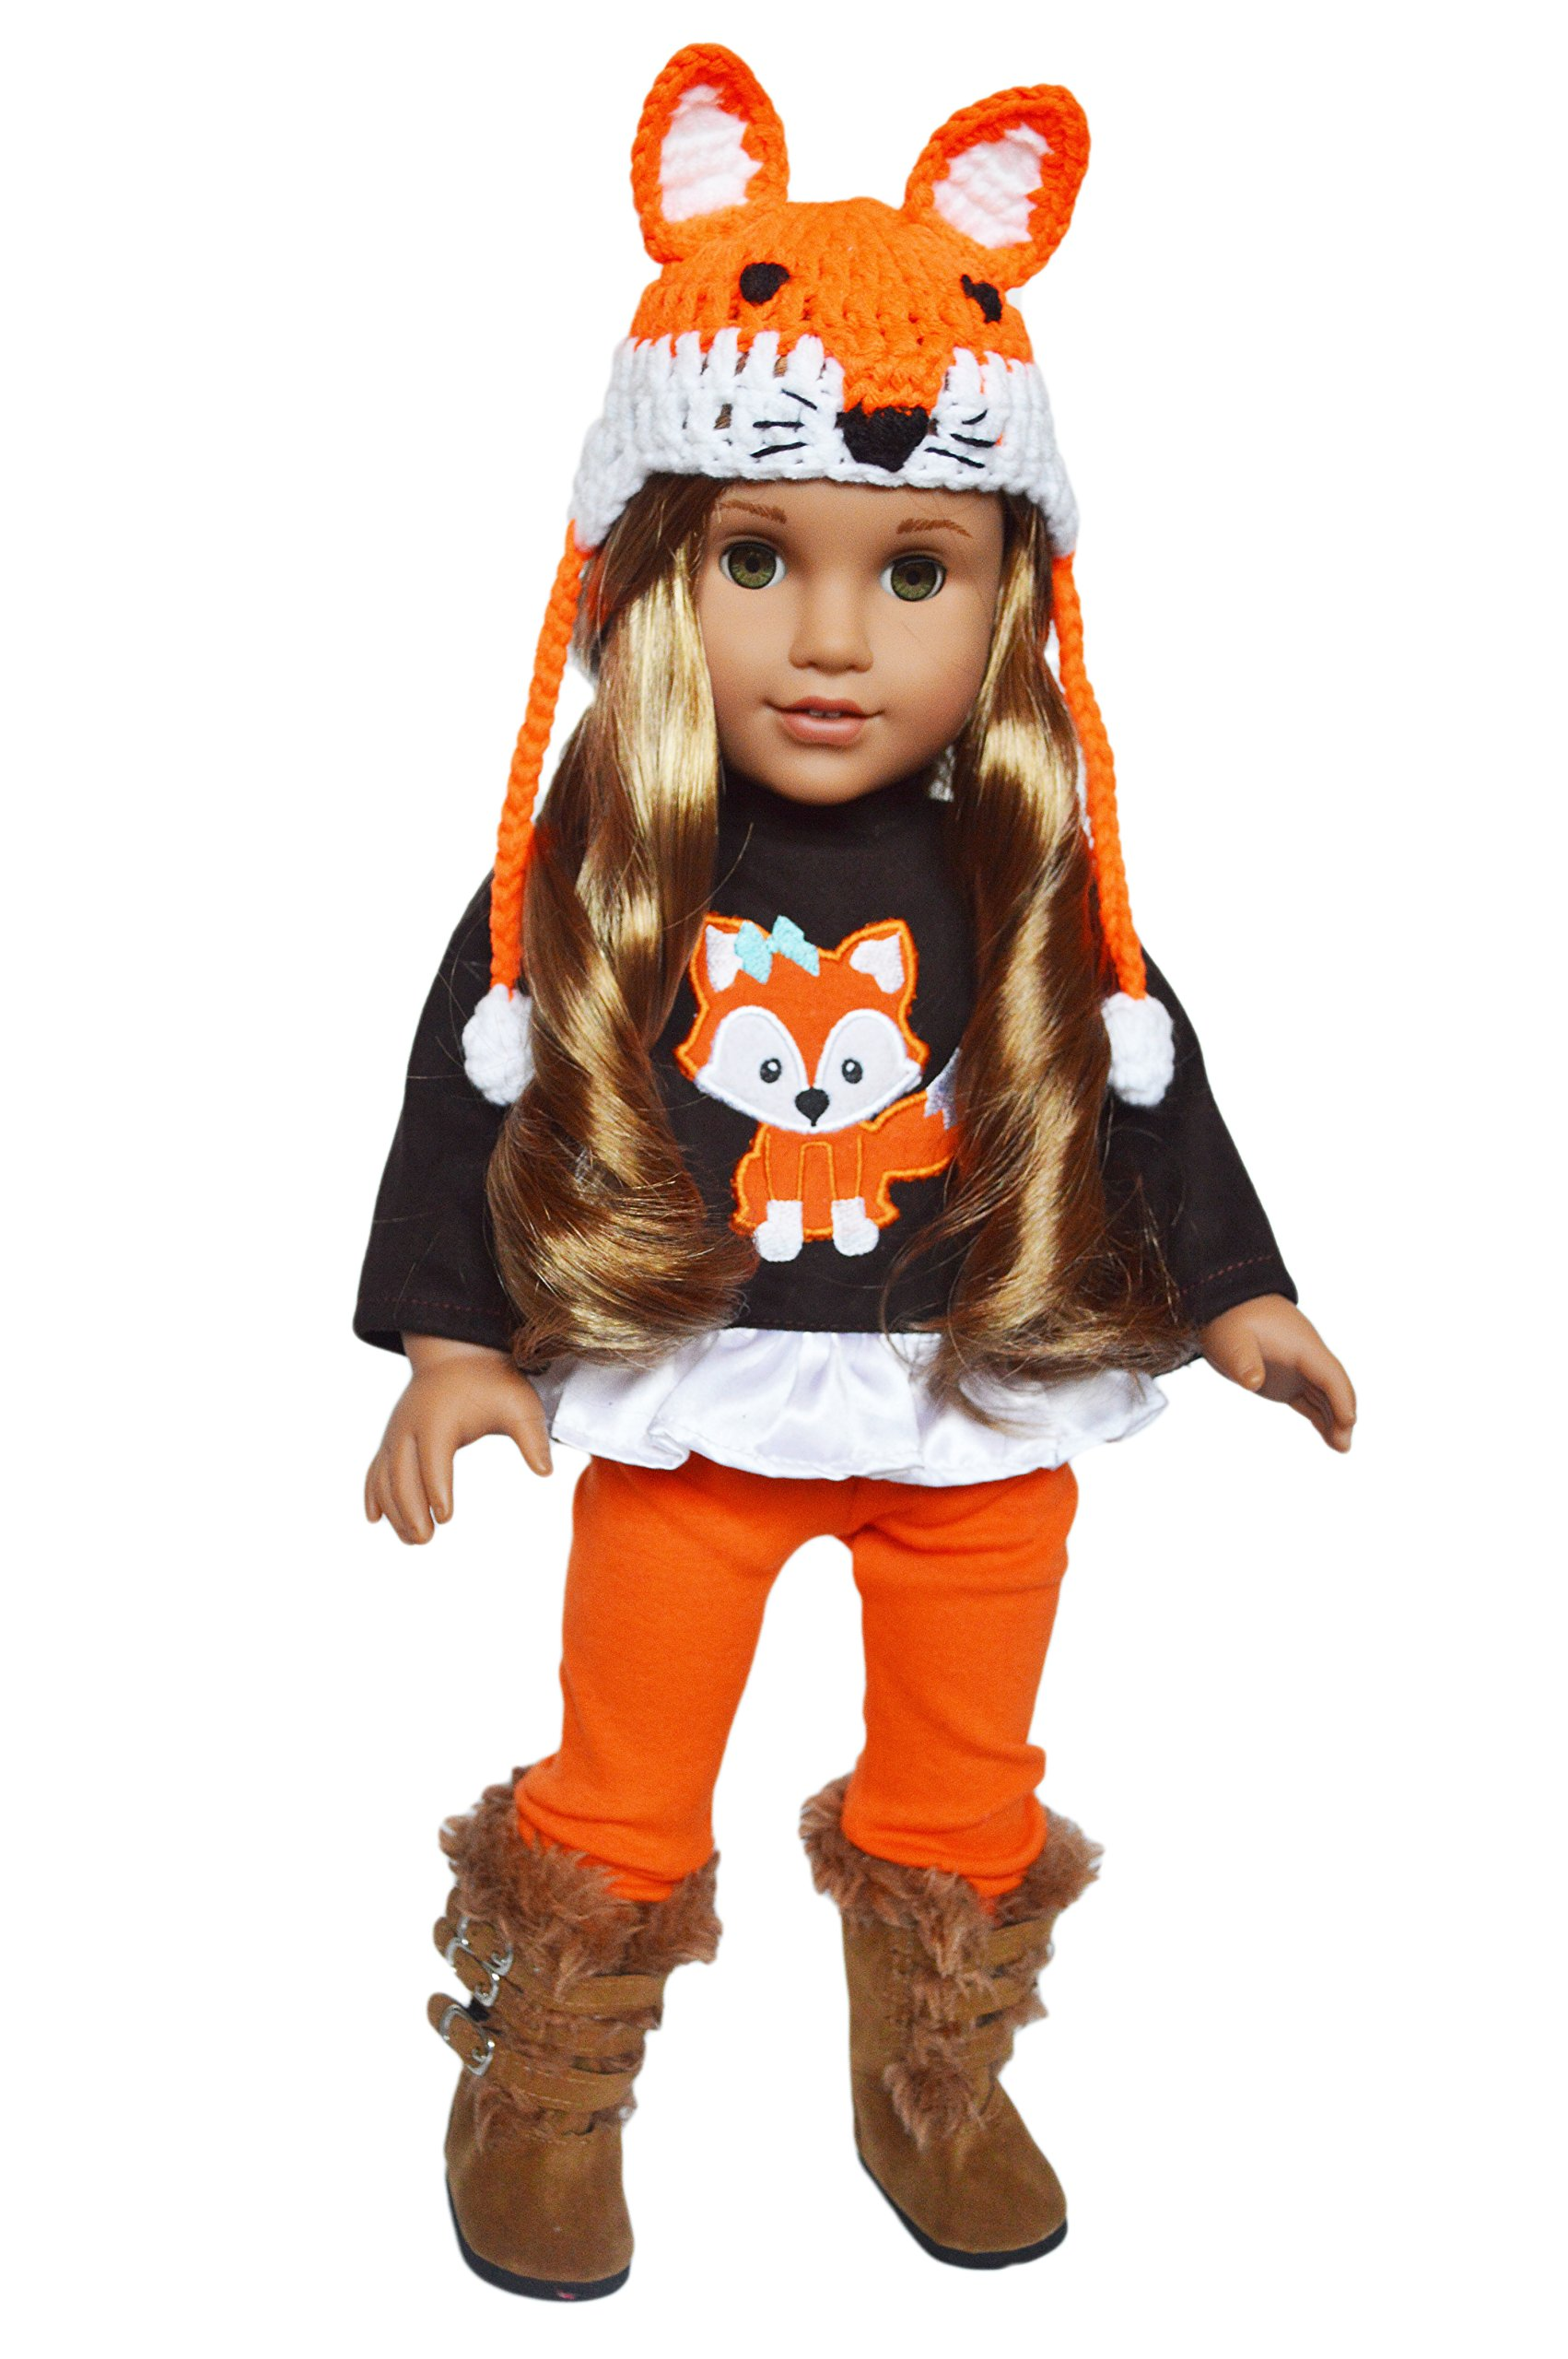 My Brittany's Fall Woodland Fox Outfit for 18 Inch Dolls- 18 Inch Doll Clothes